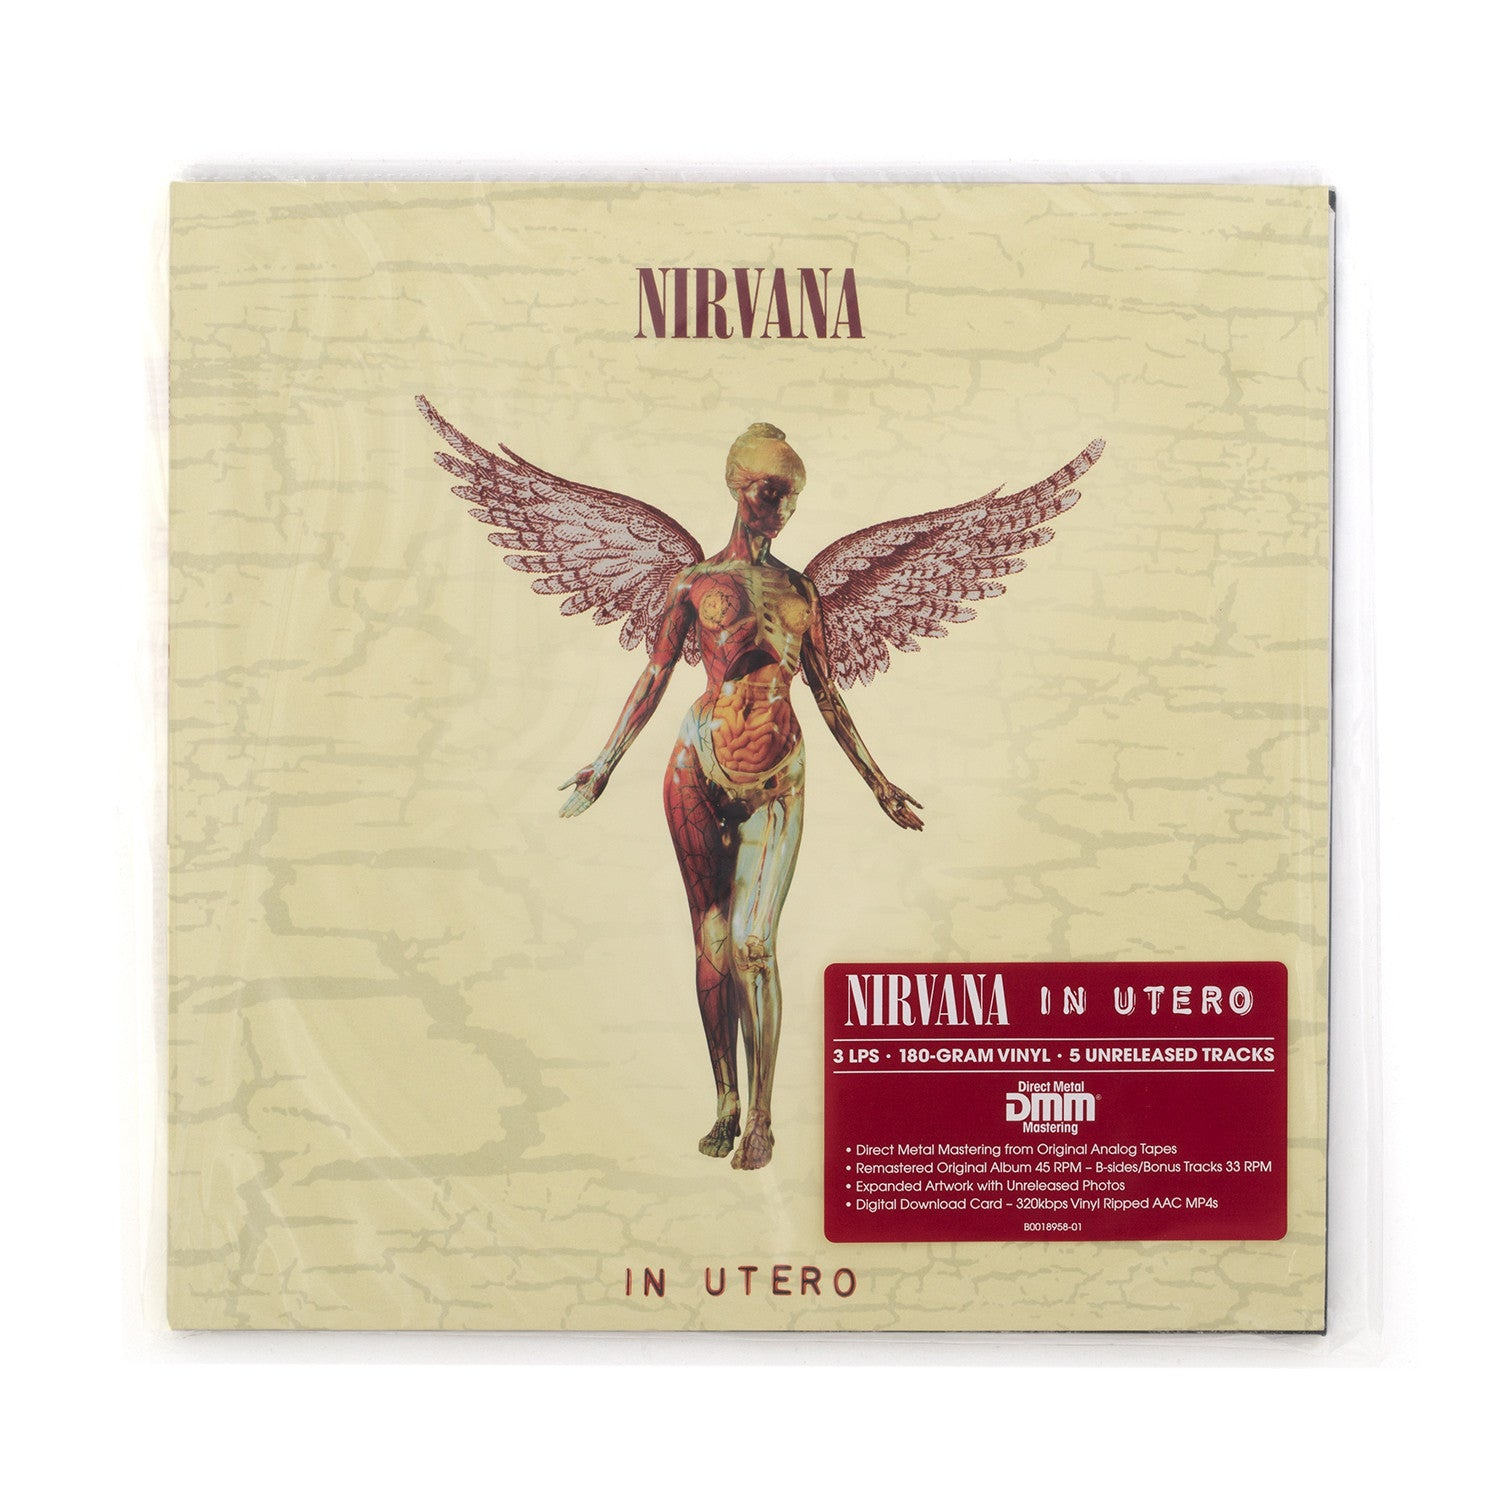 Nirvana - In Utero 3-LP - Super Deluxe Edition - Concrete